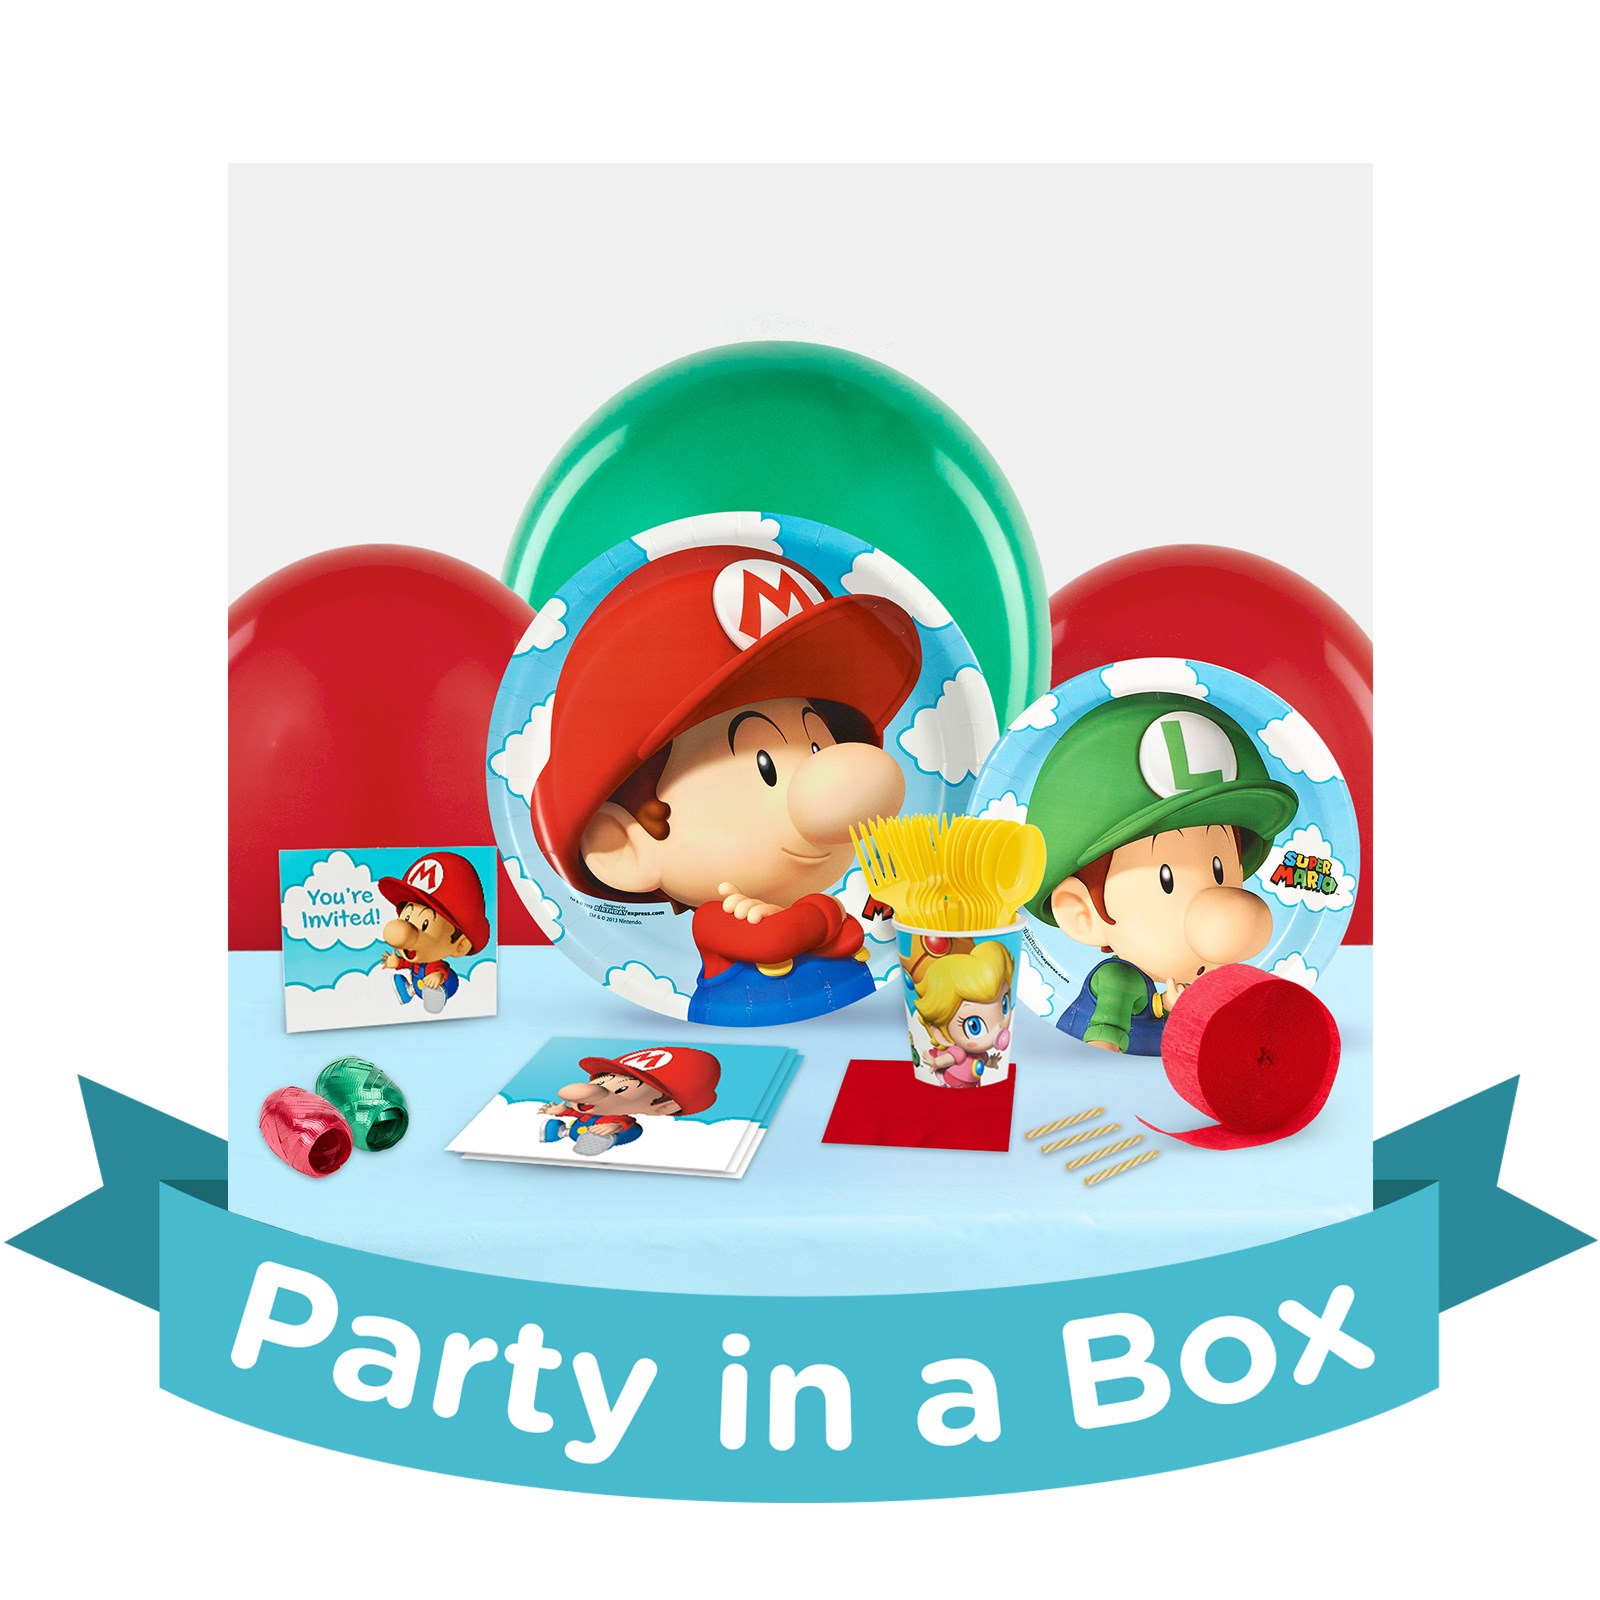 Super Mario Bros. Babies 1st Birthday Party in a Box - Basic - 16 Guests